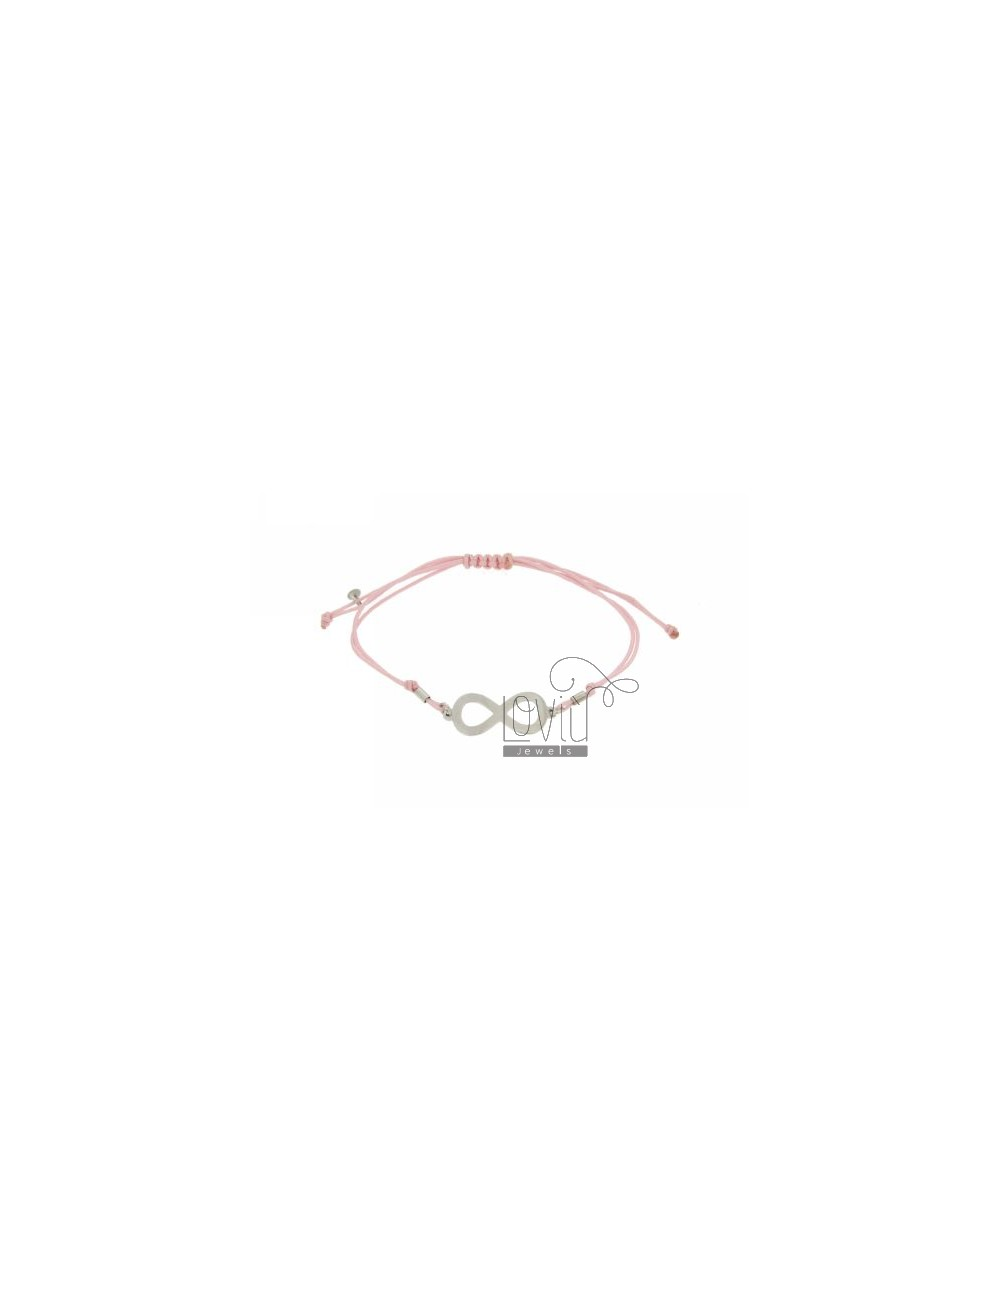 CORD BRACELET PINK WITH CENTRAL INFINITE 30x12 MM SMOOTH SILVER RHODIUM 925